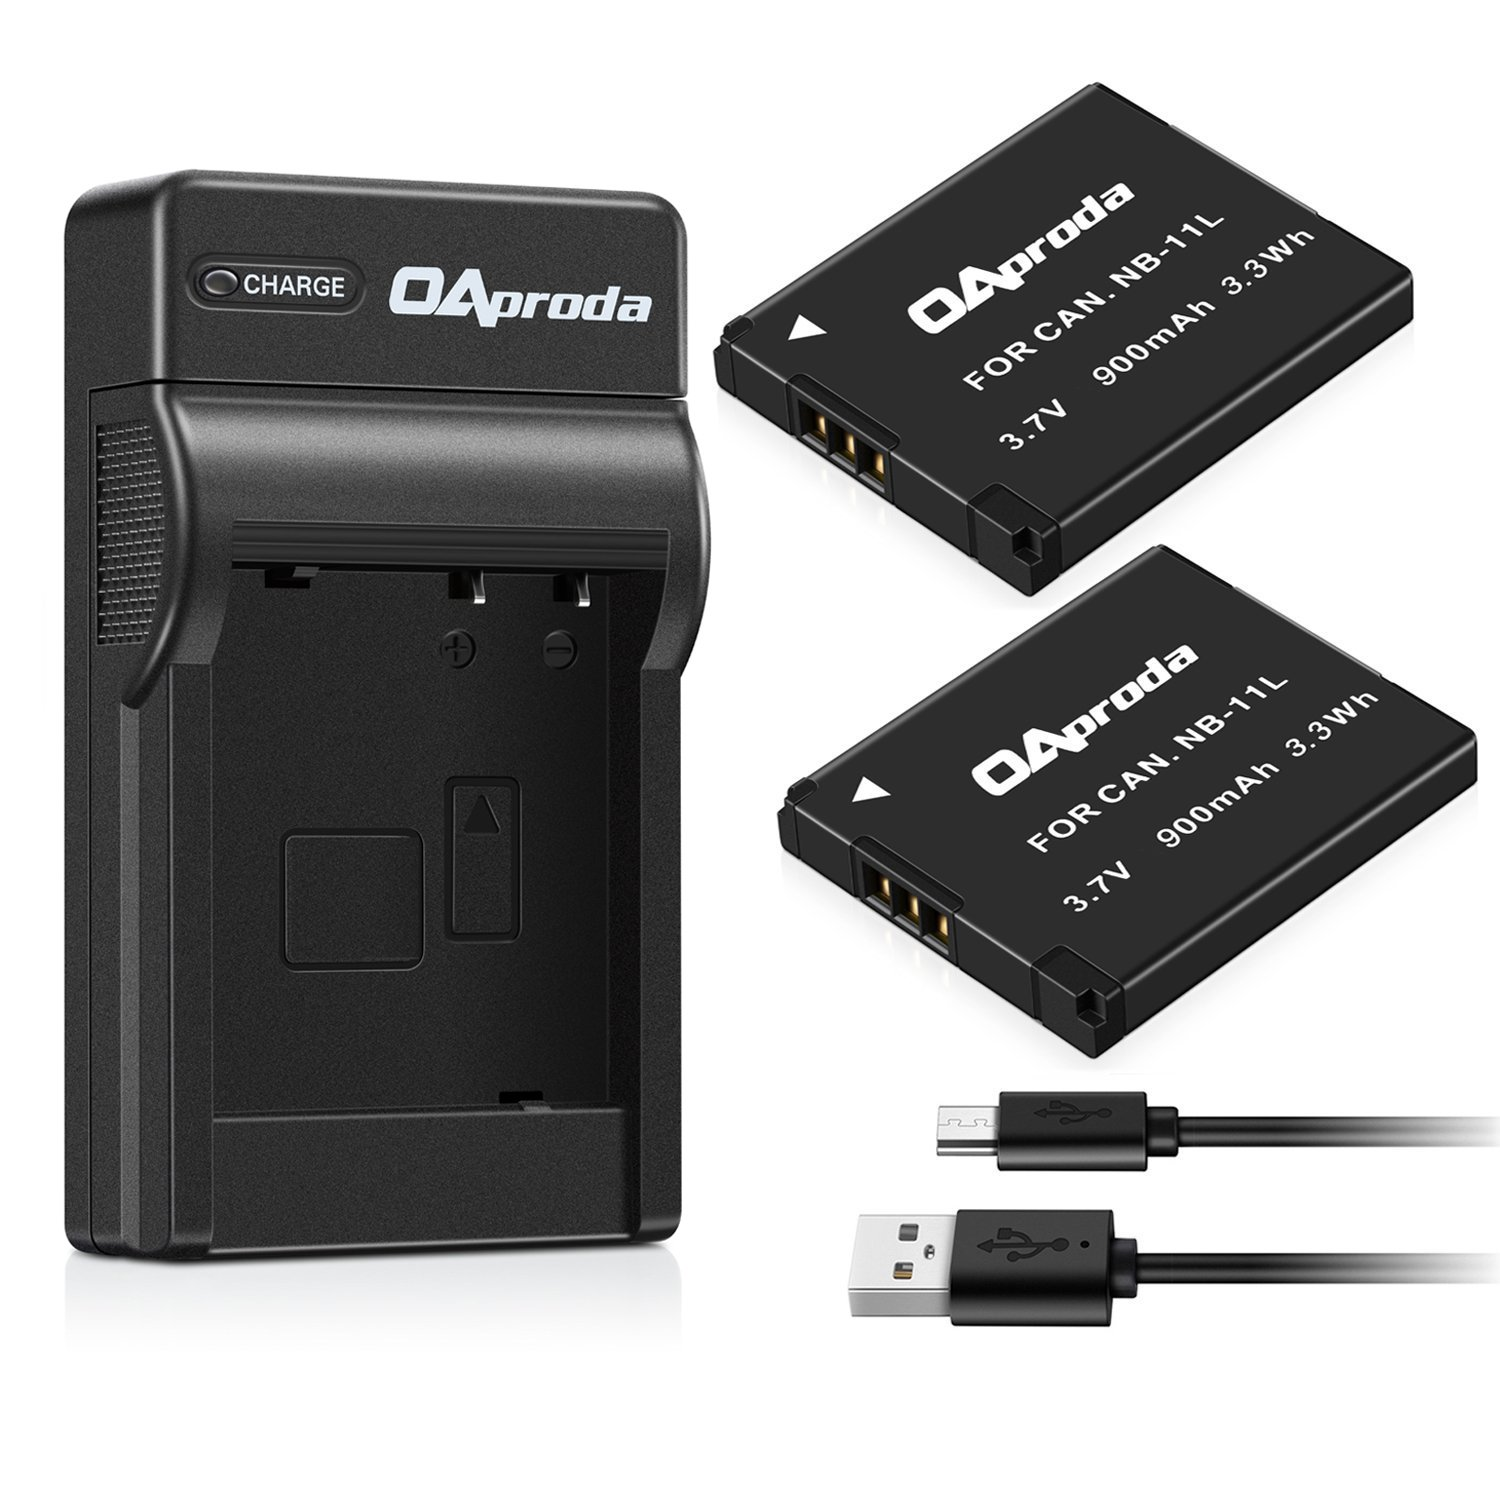 OAproda 2 Pack NB-11L/ NB-11LH Battery and USB Charger for Canon PowerShot ELPH 180, ELPH 190 is, SX420 is, SX410 is, SX400 is, A4000 is, Elph 360 HS, ELPH 170 is, ELPH 160, ELPH 150 is, ELPH 140 is by OAproda